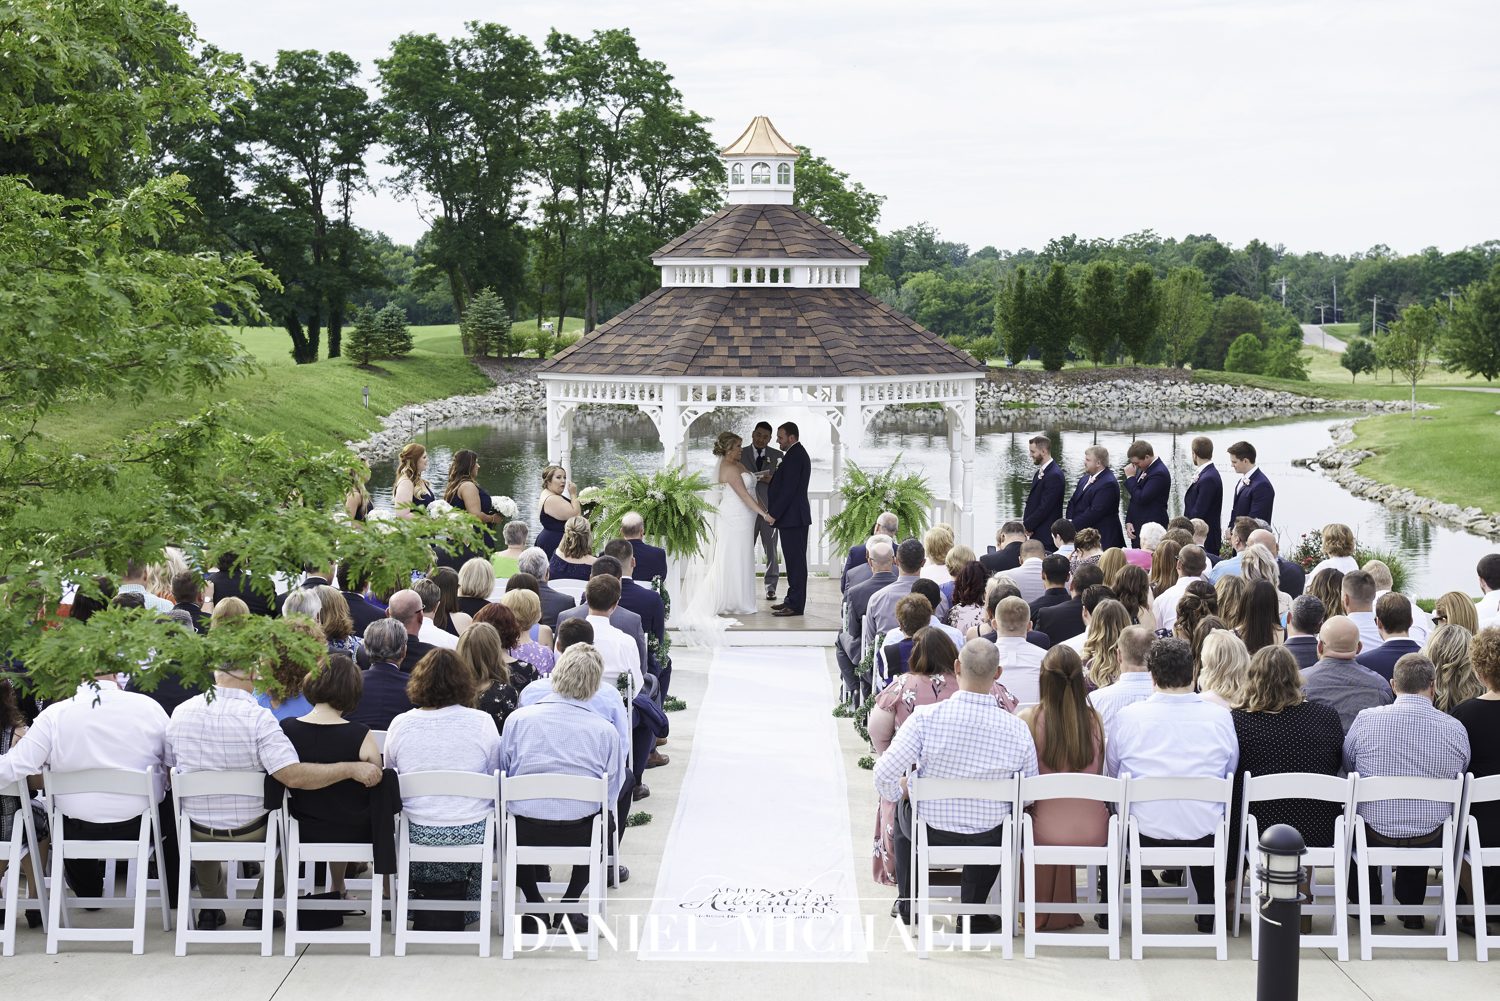 Gazebo Wedding at Oasis Event Center